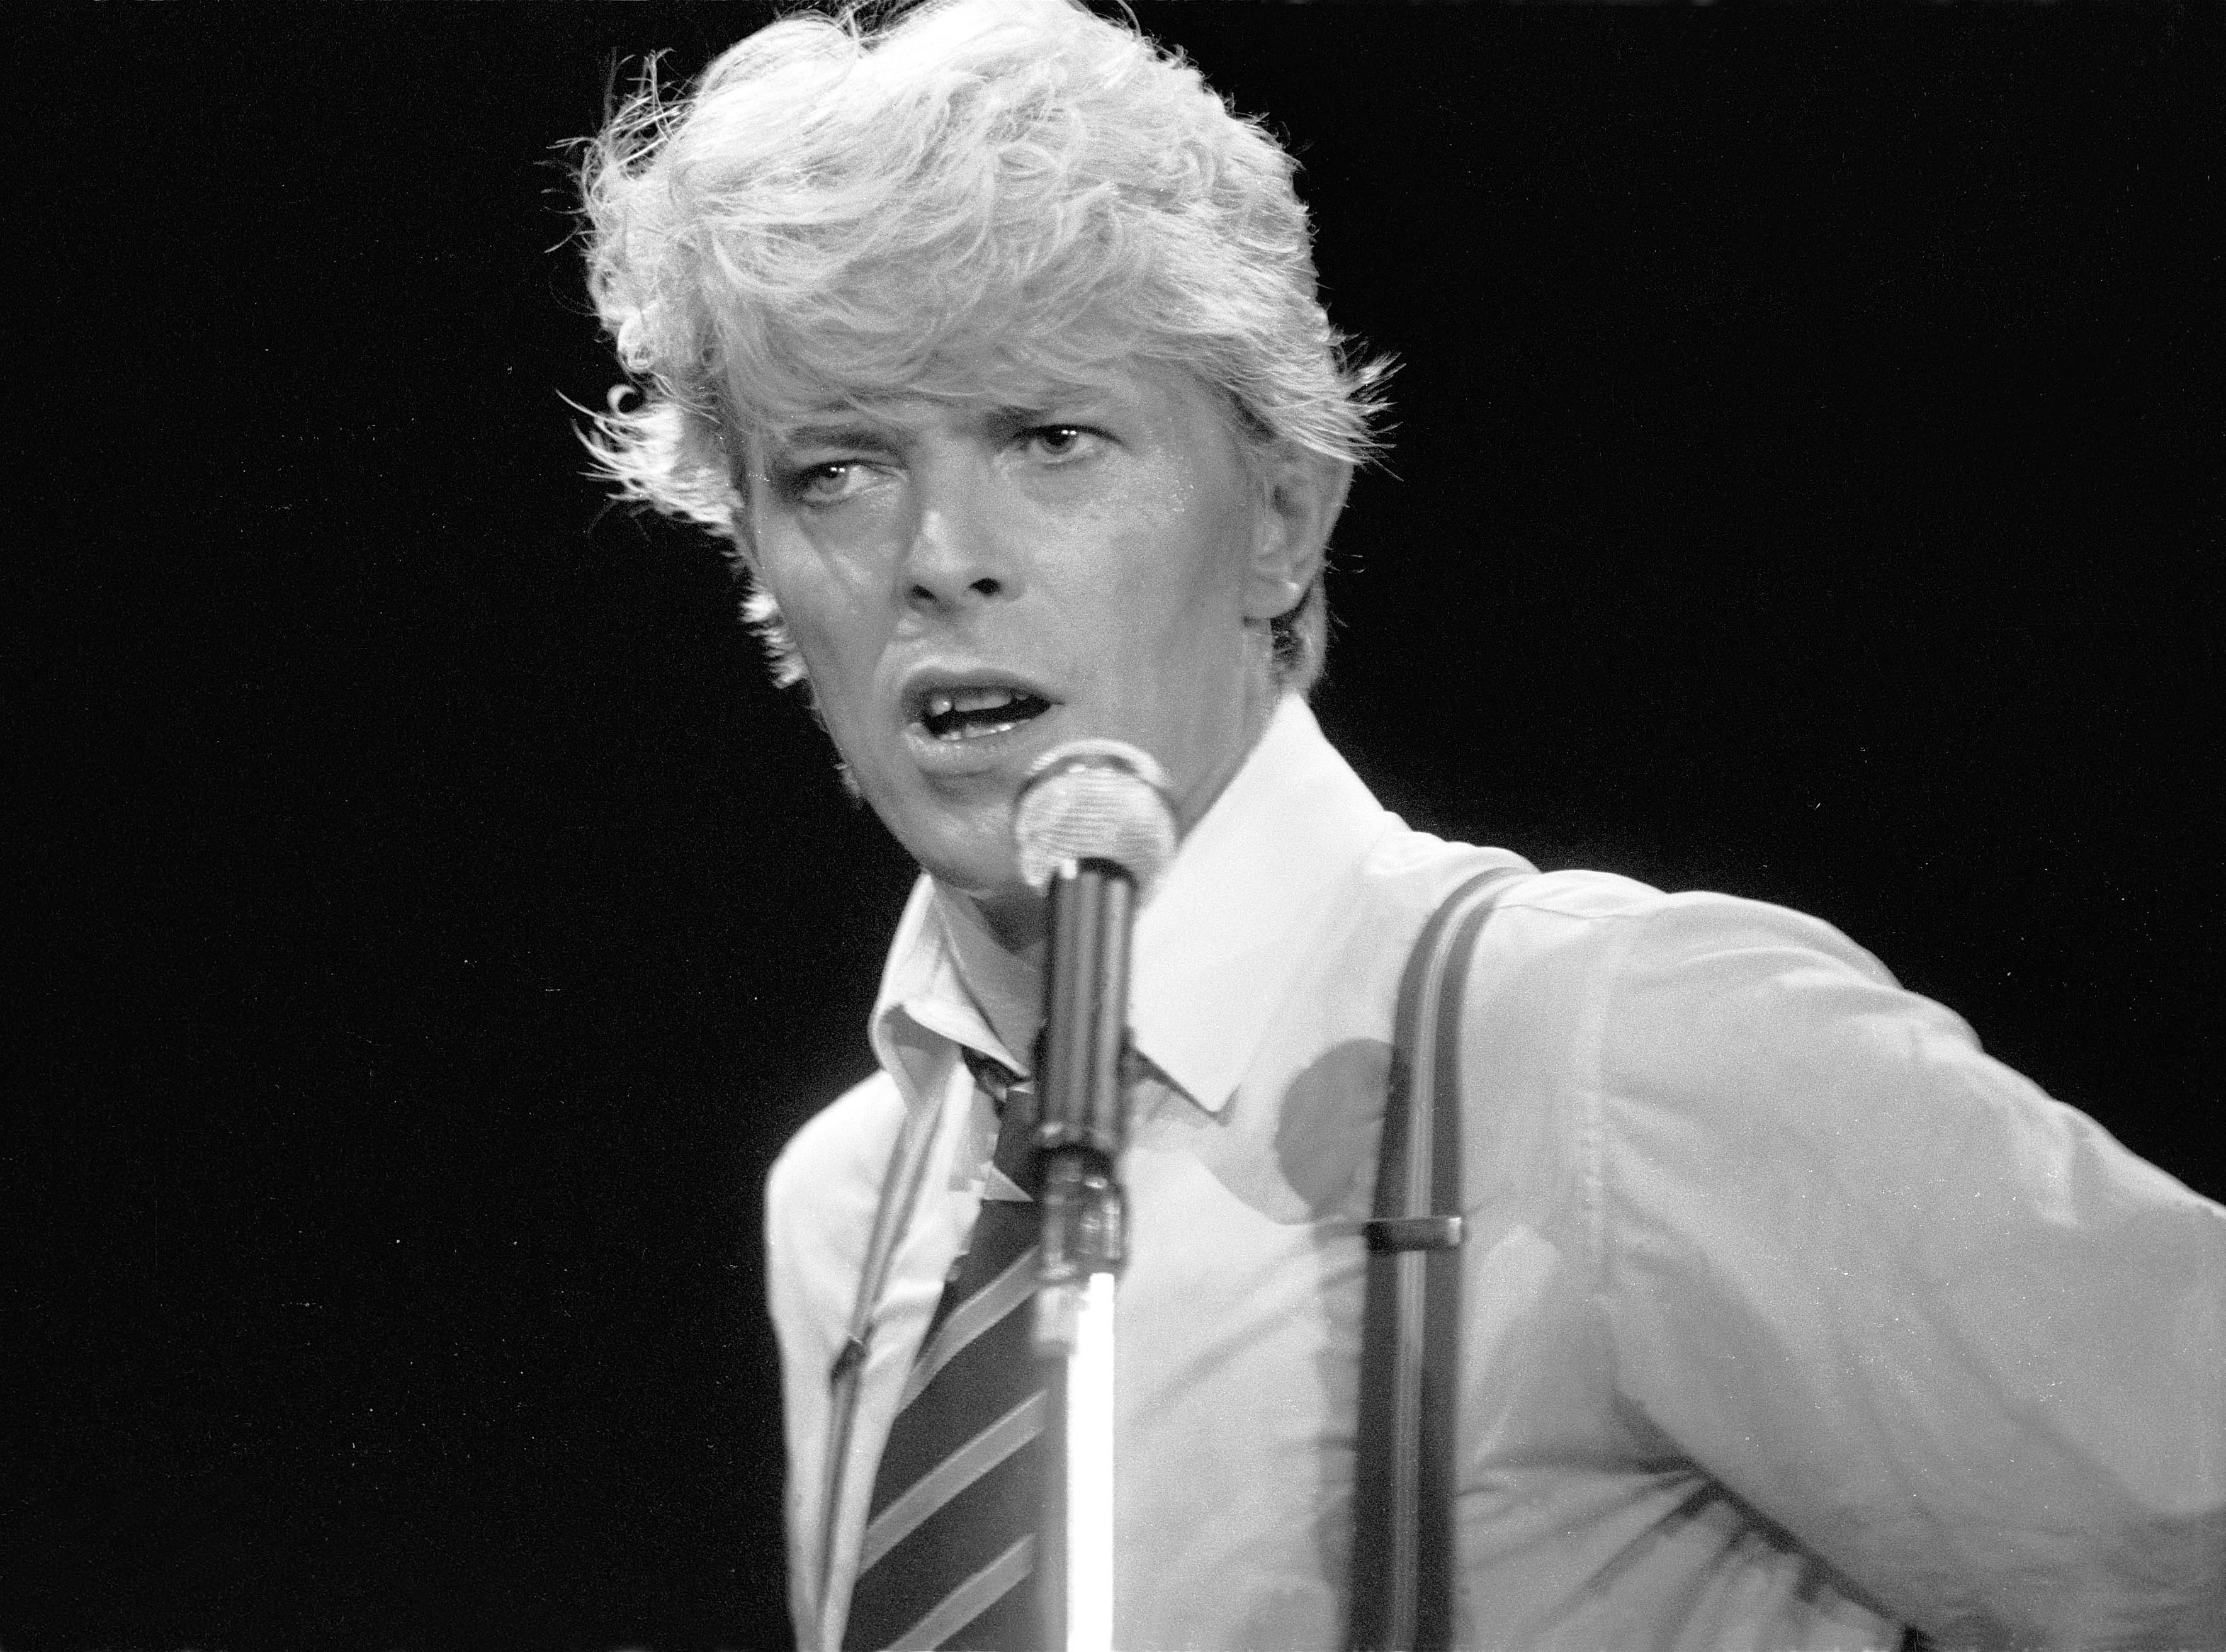 Rock Icon David Bowie Dies At 69 | Valley Public Radio